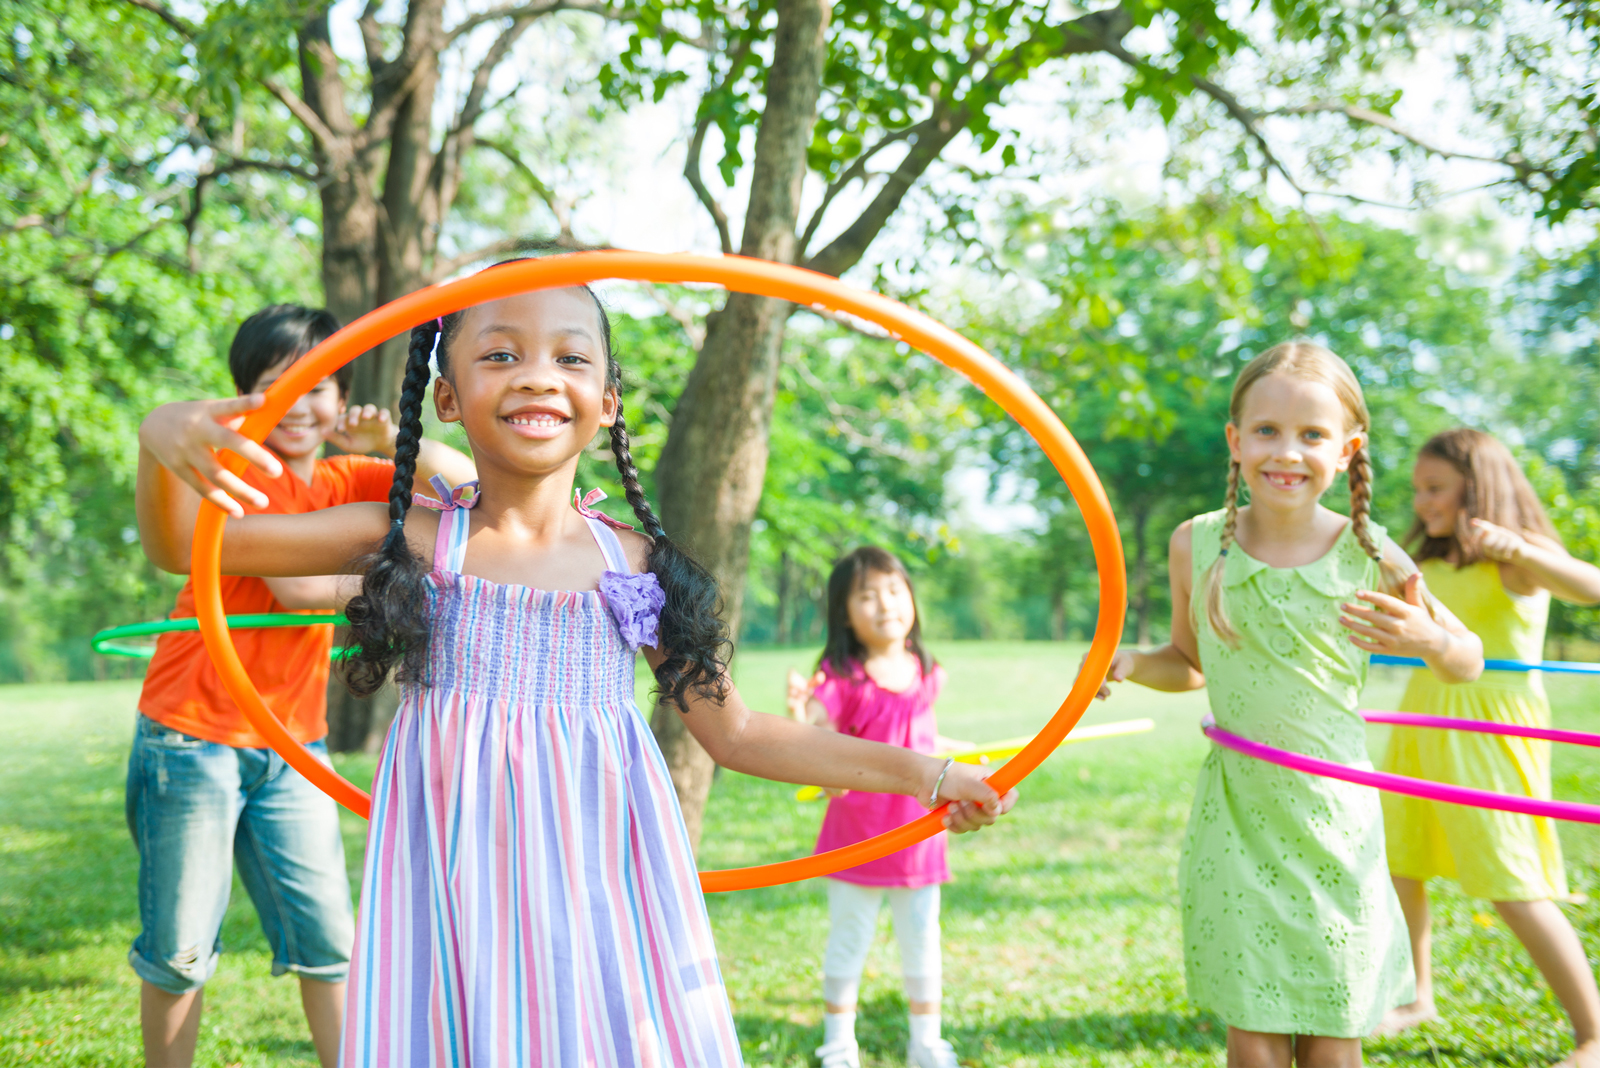 Heathy Eating and Active Play